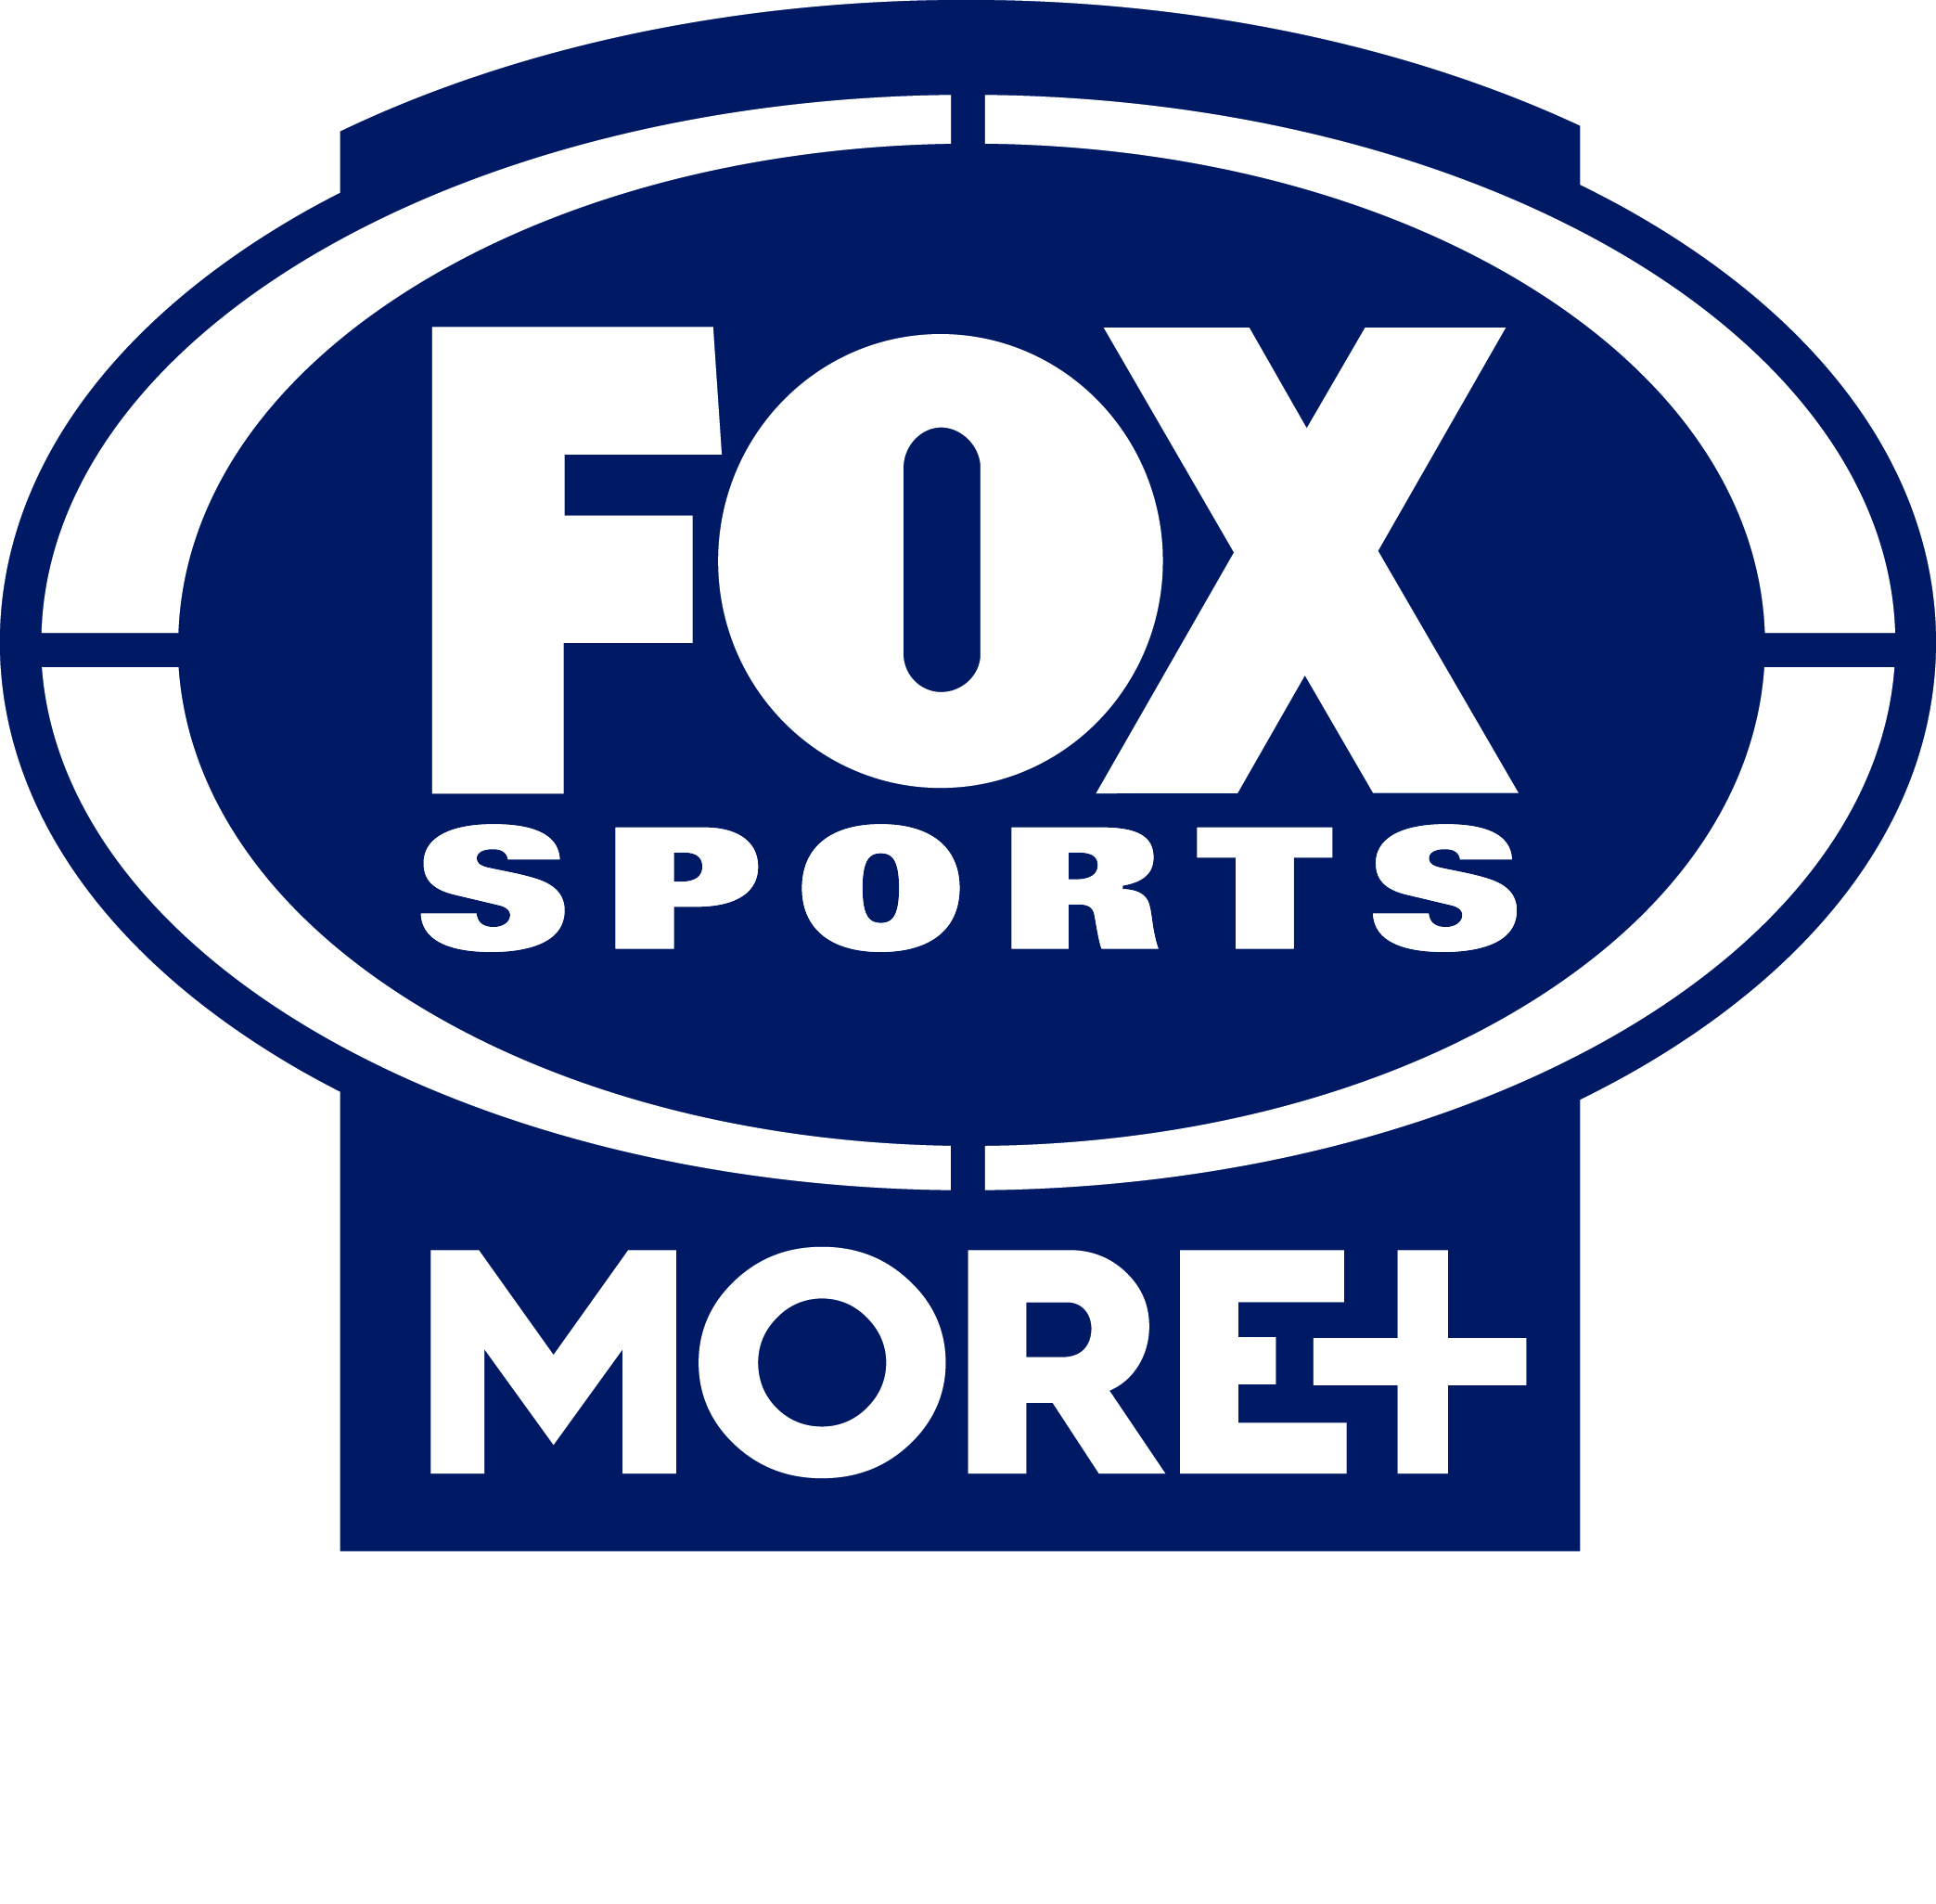 Fox sports plus logo